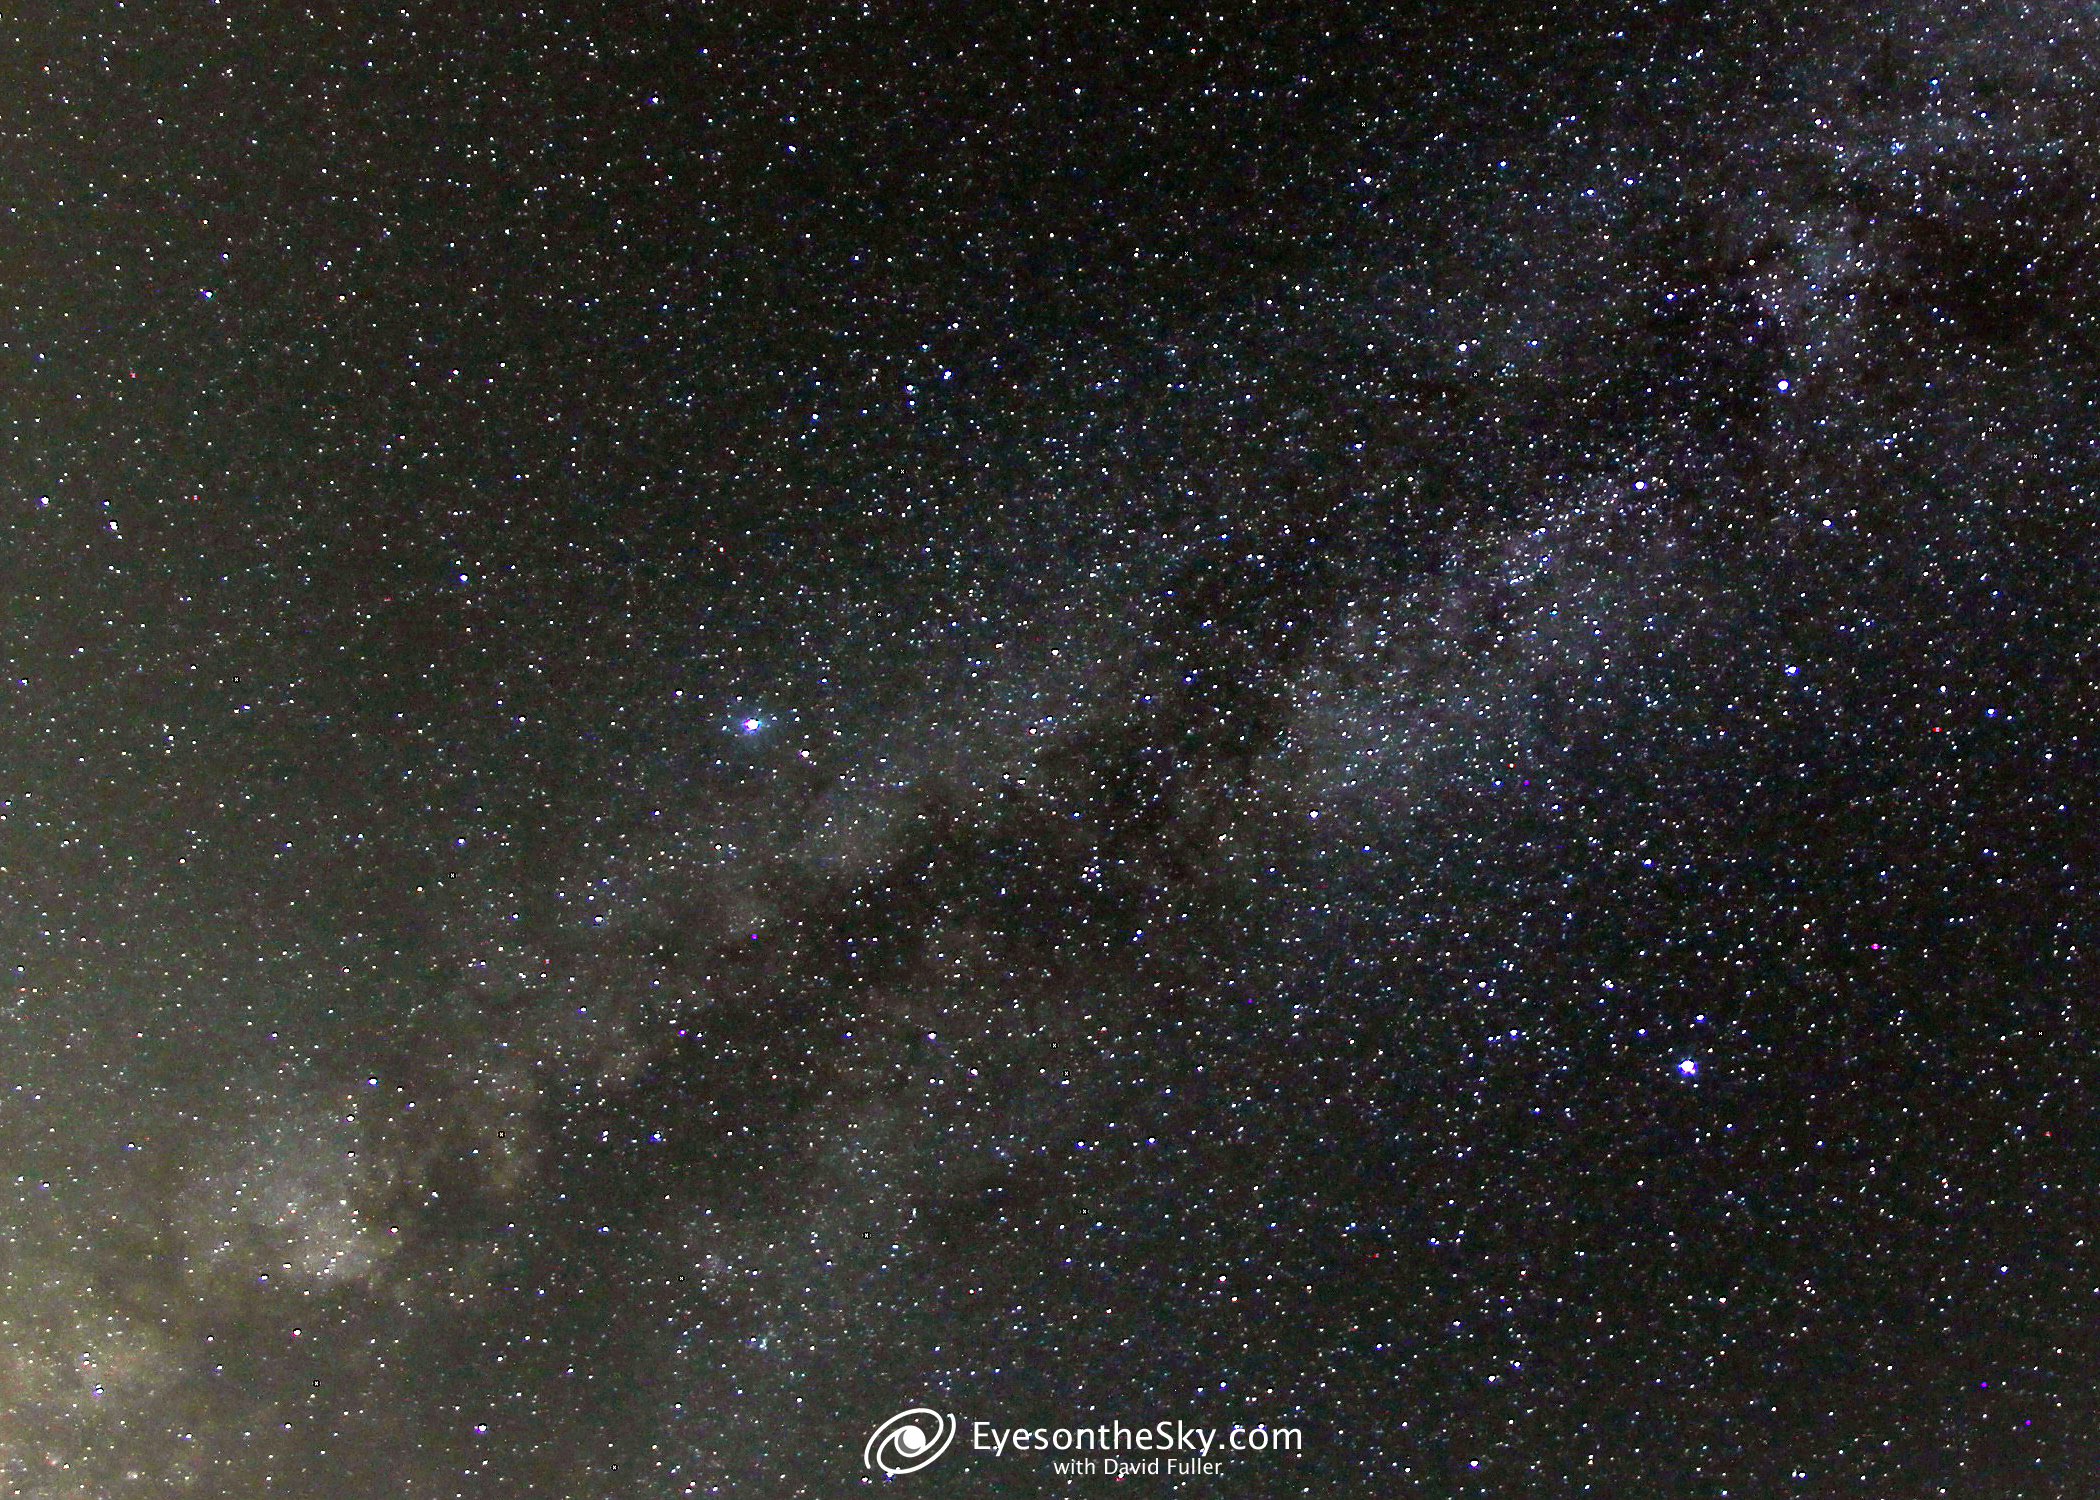 Summer Triangle From Stelle Il 20201009 5 Min Iso200 6.5mm Opteka T3